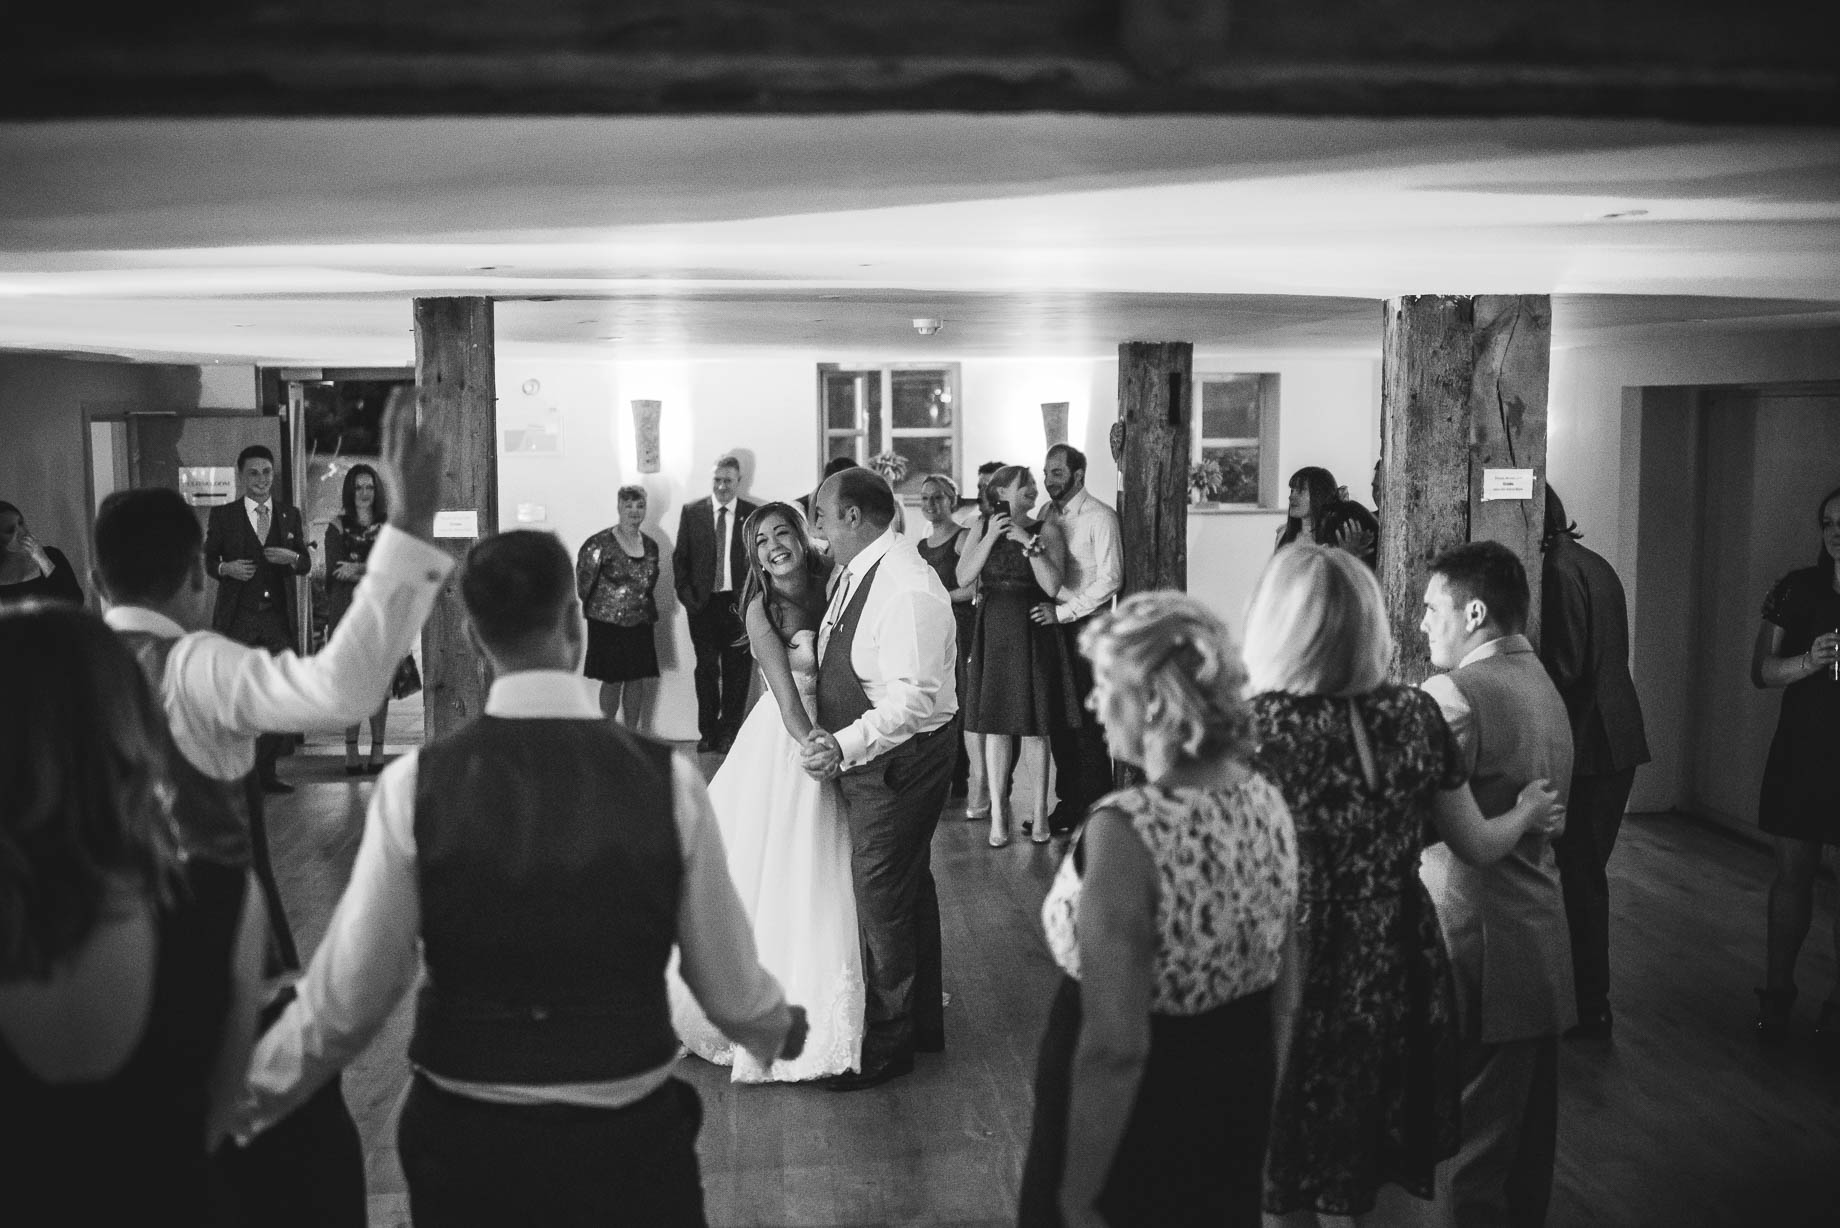 Bury Court Barn wedding photography - Guy Collier - Kirsty and Lewis (150 of 150)